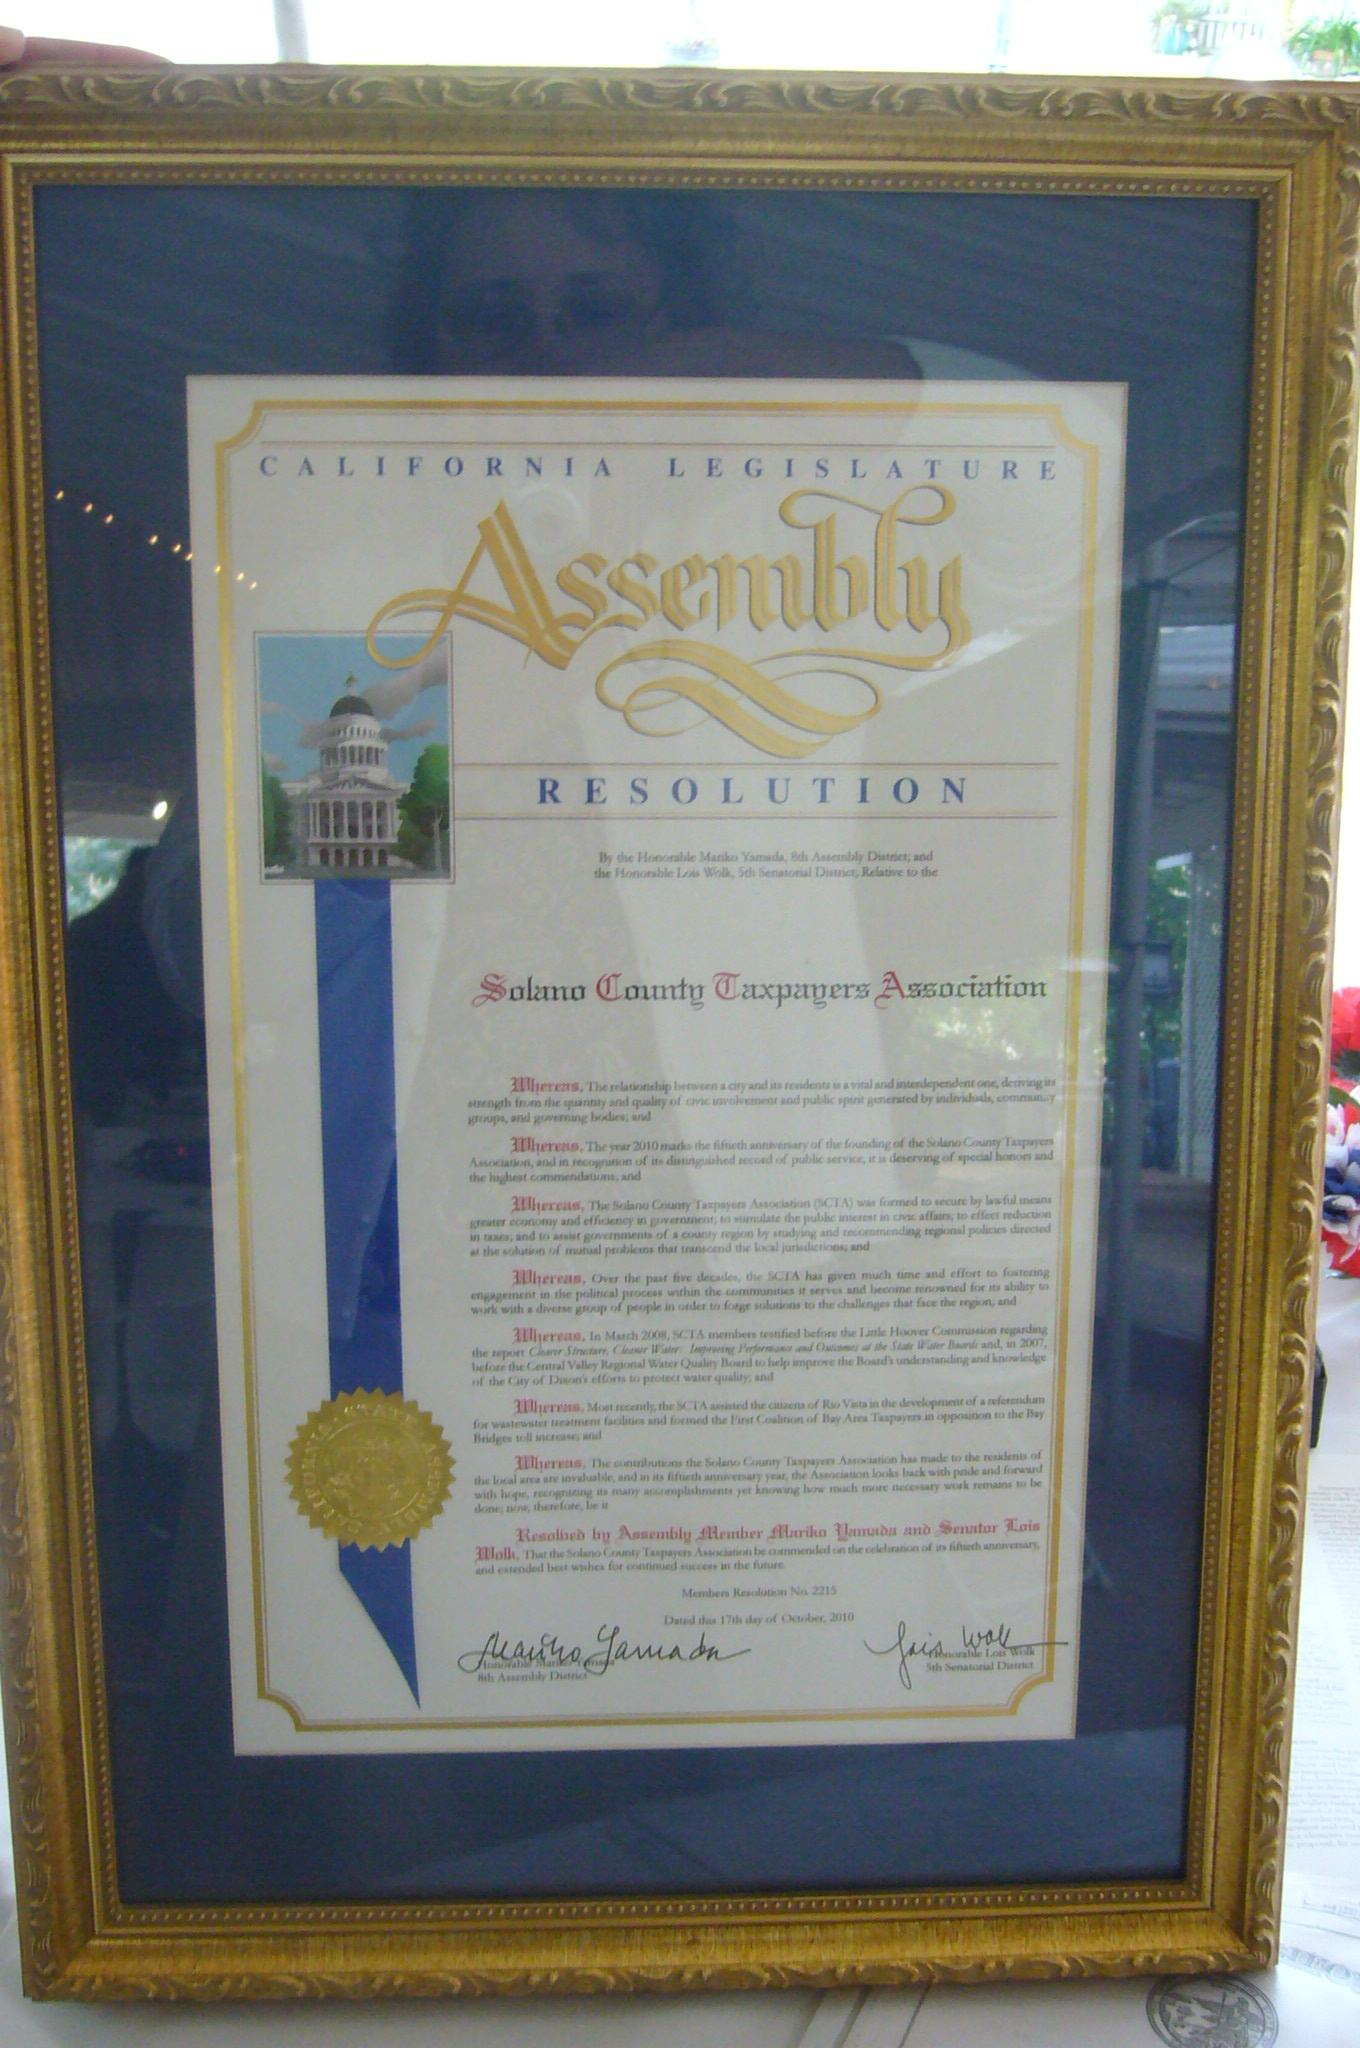 California Legislature Resolution presented to SCTA in celebration of 50 years anniversary.